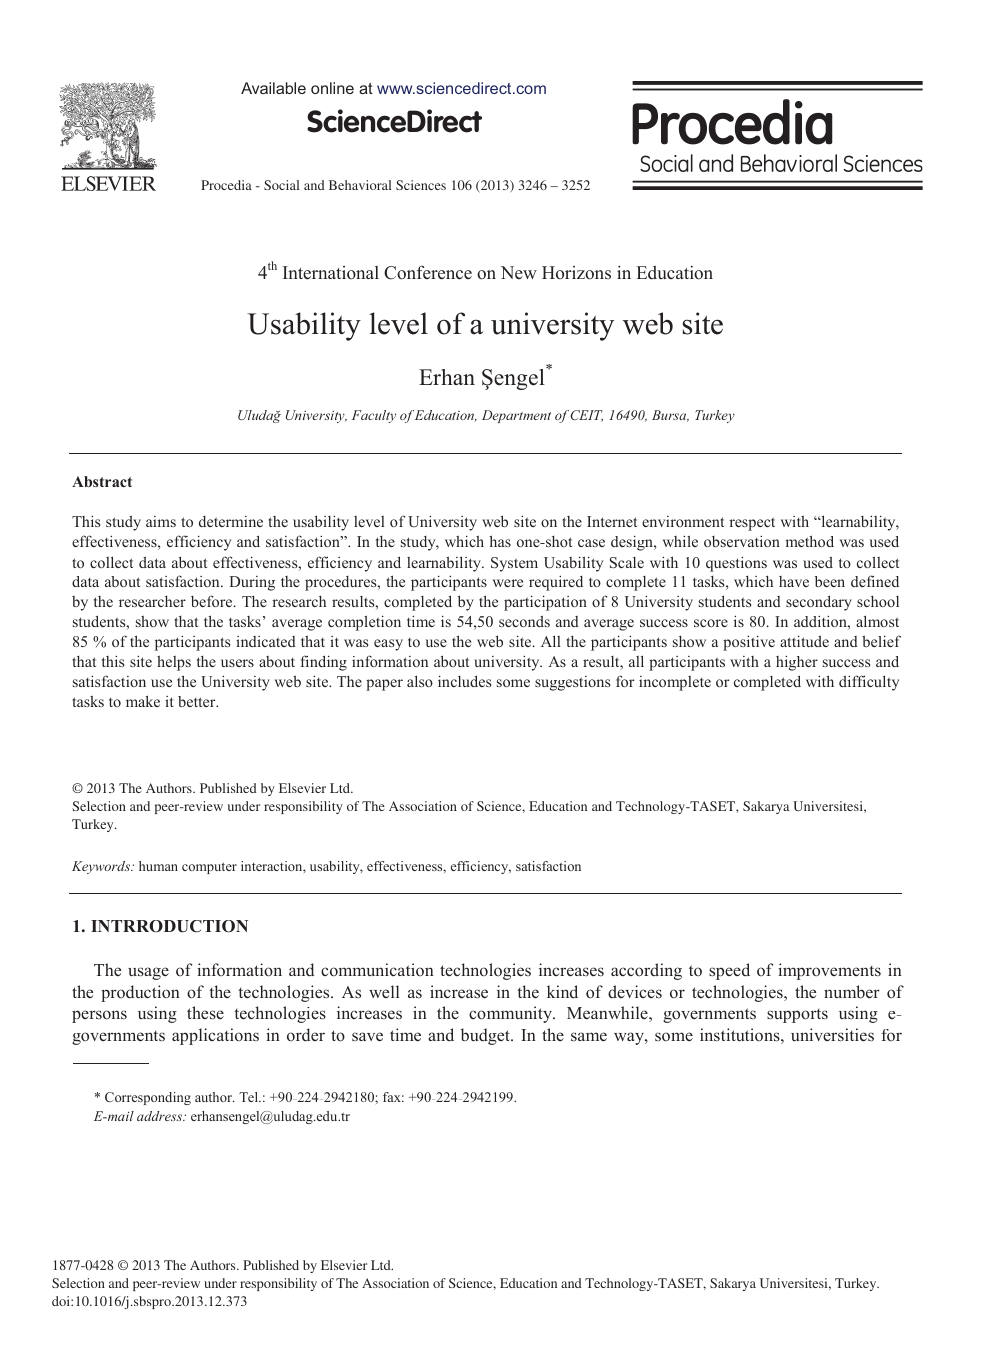 Usability Level of a University Web Site – topic of research